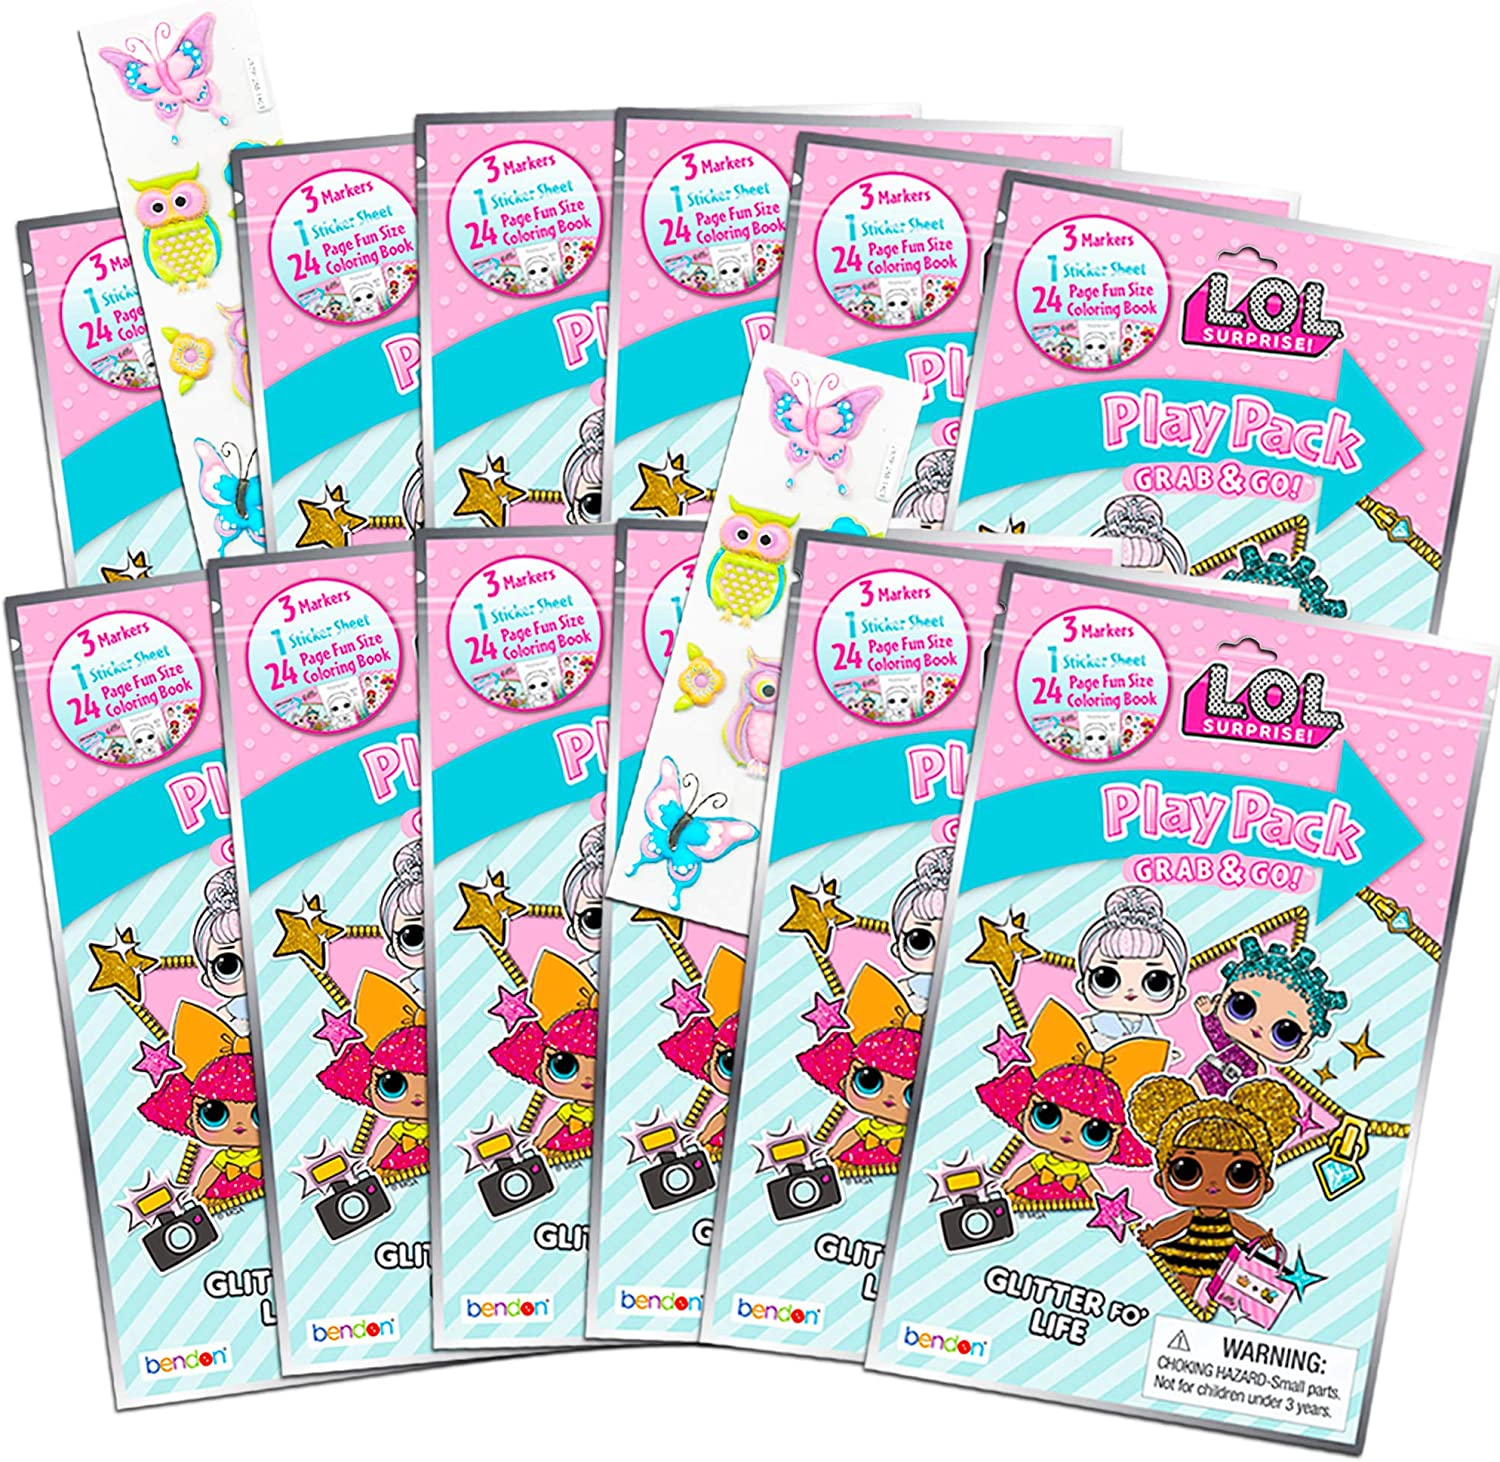 Dolls LOL Coloring Ultra-Cheap Deals Limited time cheap sale Book Party Favor of Bundle Packs Gra ~ 12